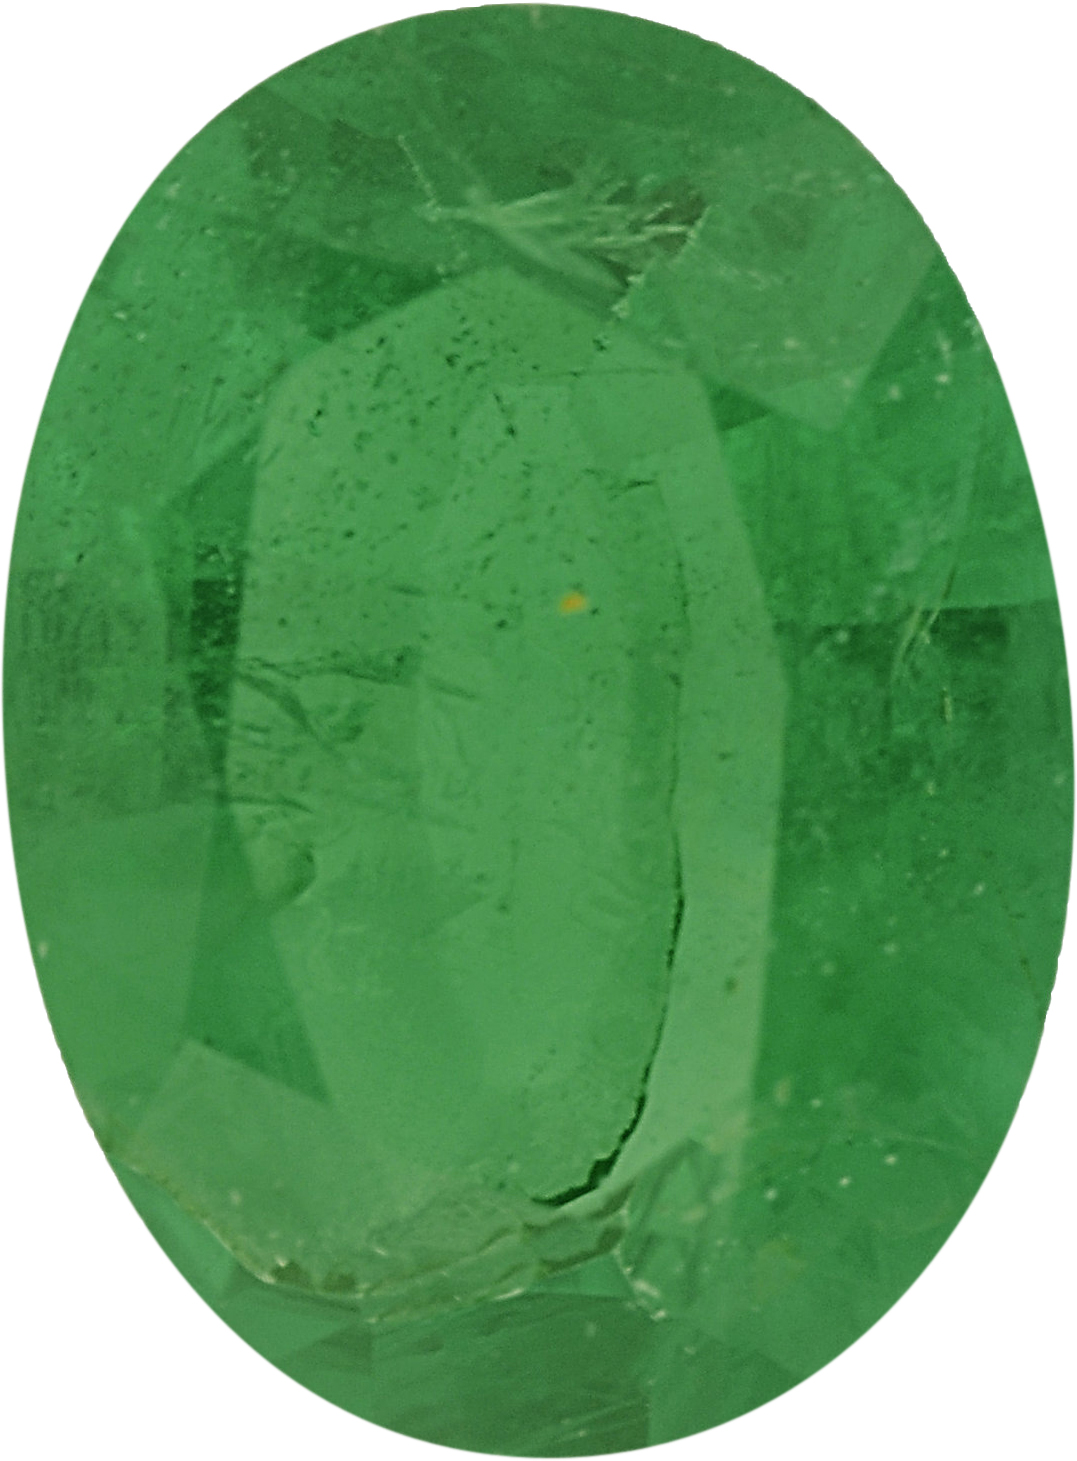 7.34 x 5.43 mm, Emerald Loose Gemstone in Oval Cut, 0.75 carats